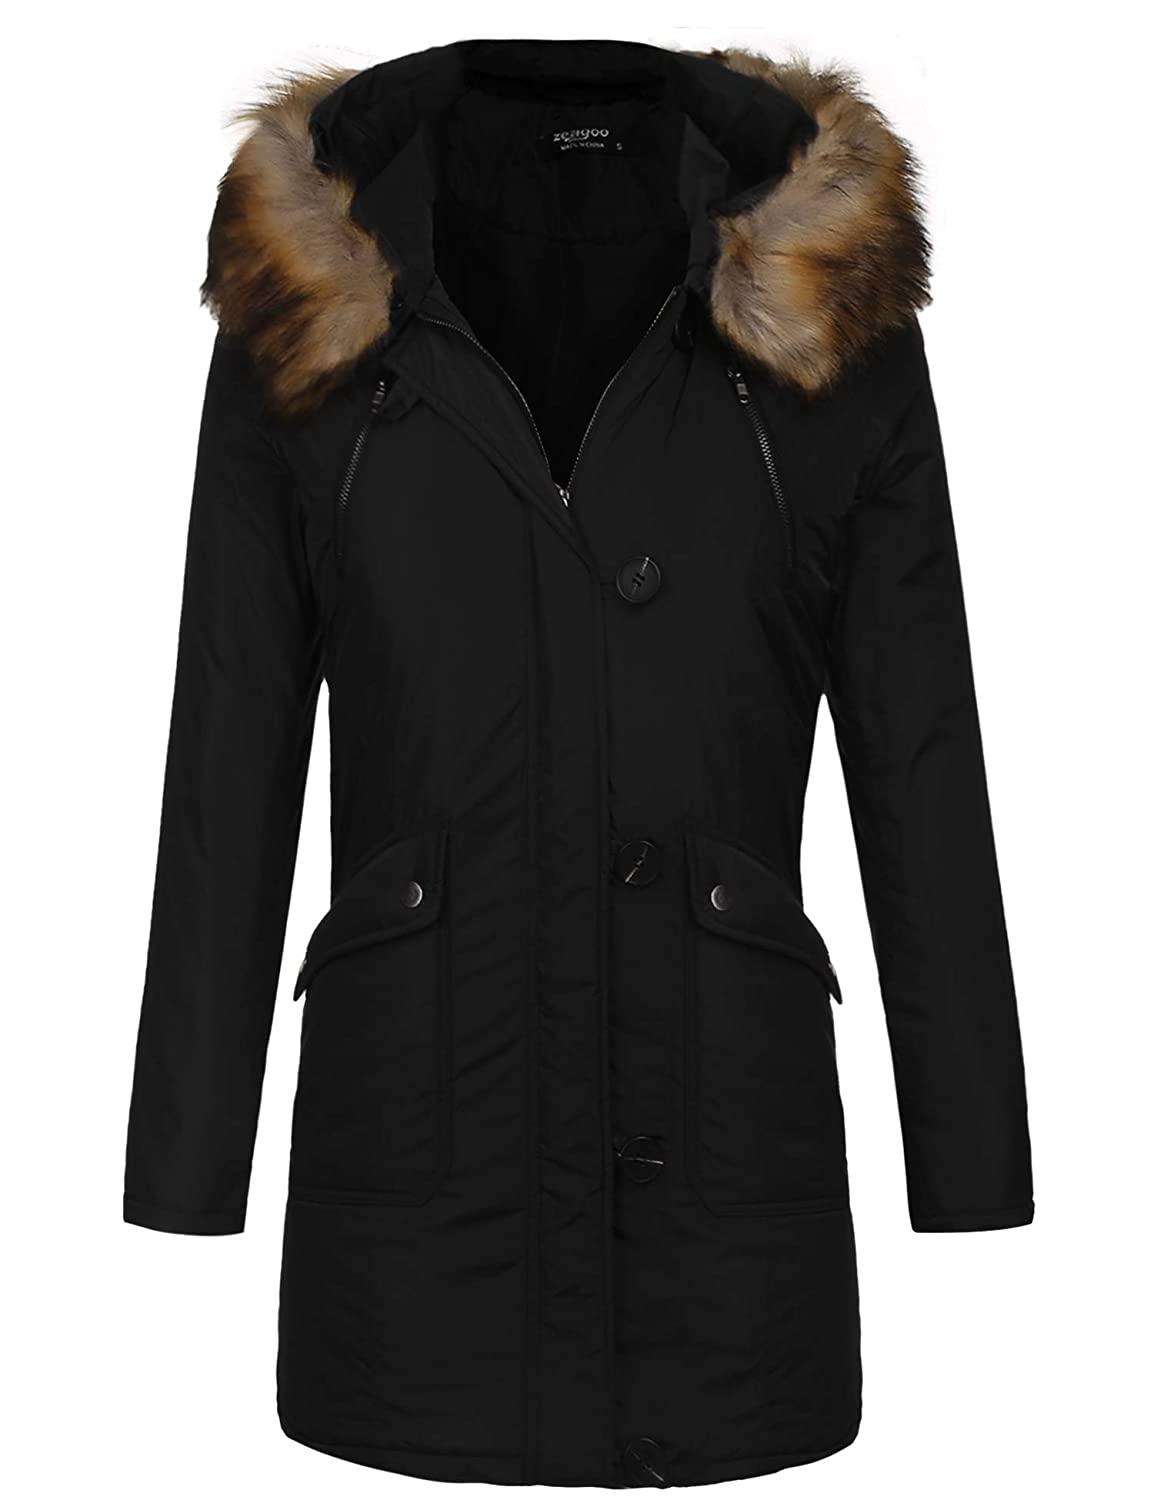 Yhlovg Womens Military Hooded Warm Winter Faux Fur Lined Parkas Anroaks Long Coats